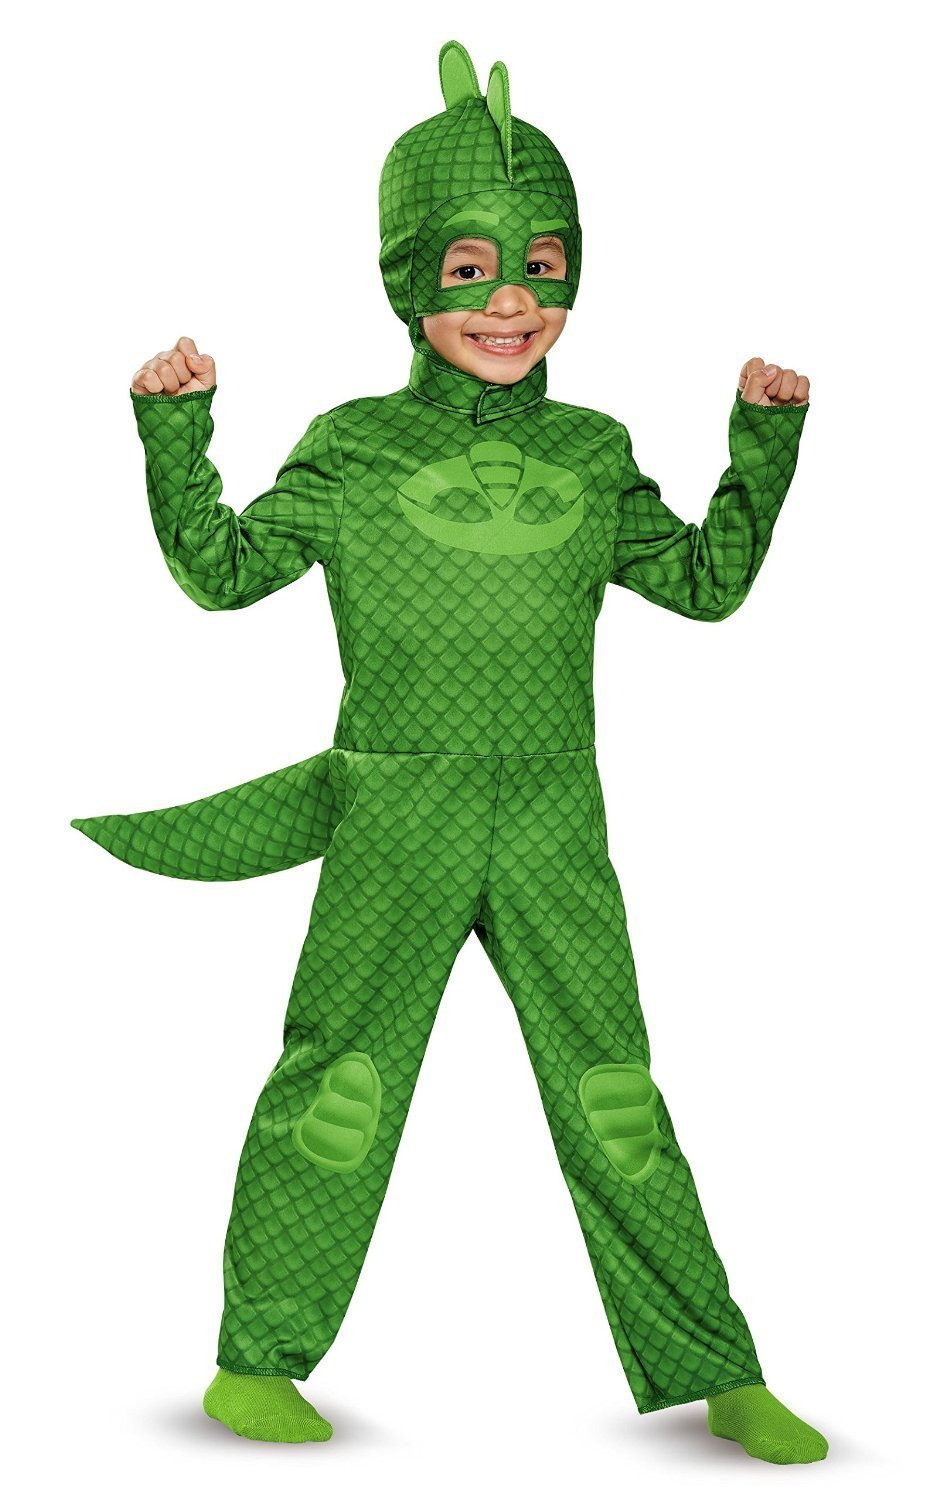 DecoPac PJ Masks Disguise Gekko Classic Toddler PJ Masks Costume, Small/2T: Amazon.es: Hogar